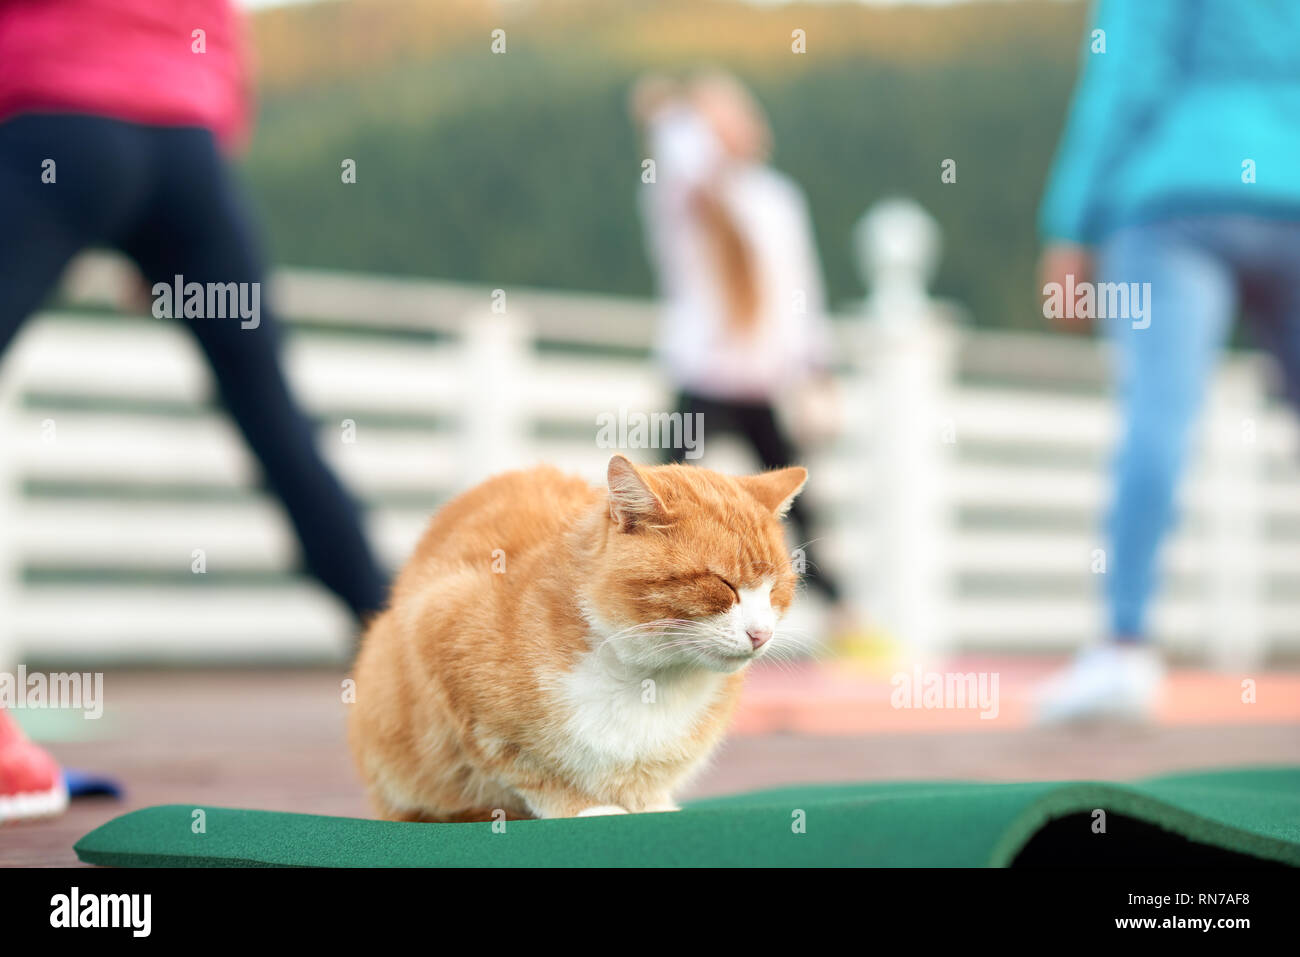 Peaceful cat sleeping while group of women training. Ginger and white cat sitting on yoga mat with closed eyes. People practicing and doing fitness or other sports. - Stock Image